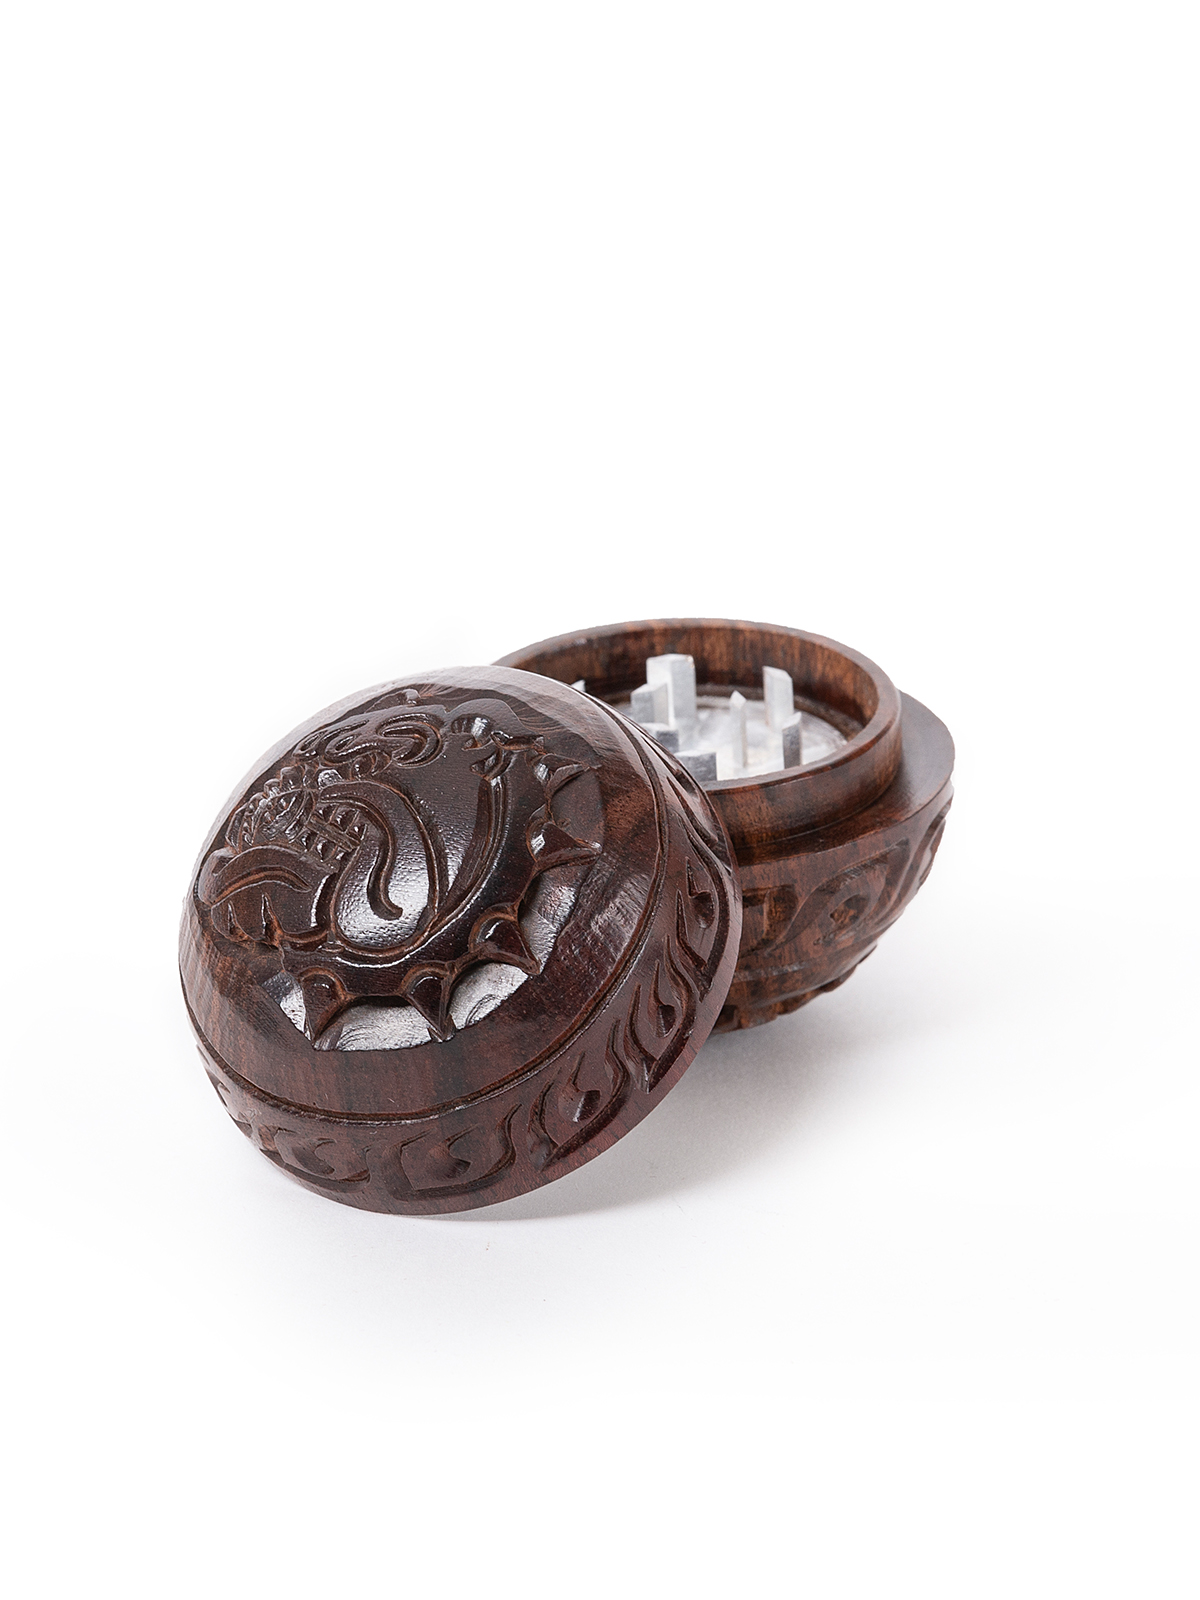 this is a grinder